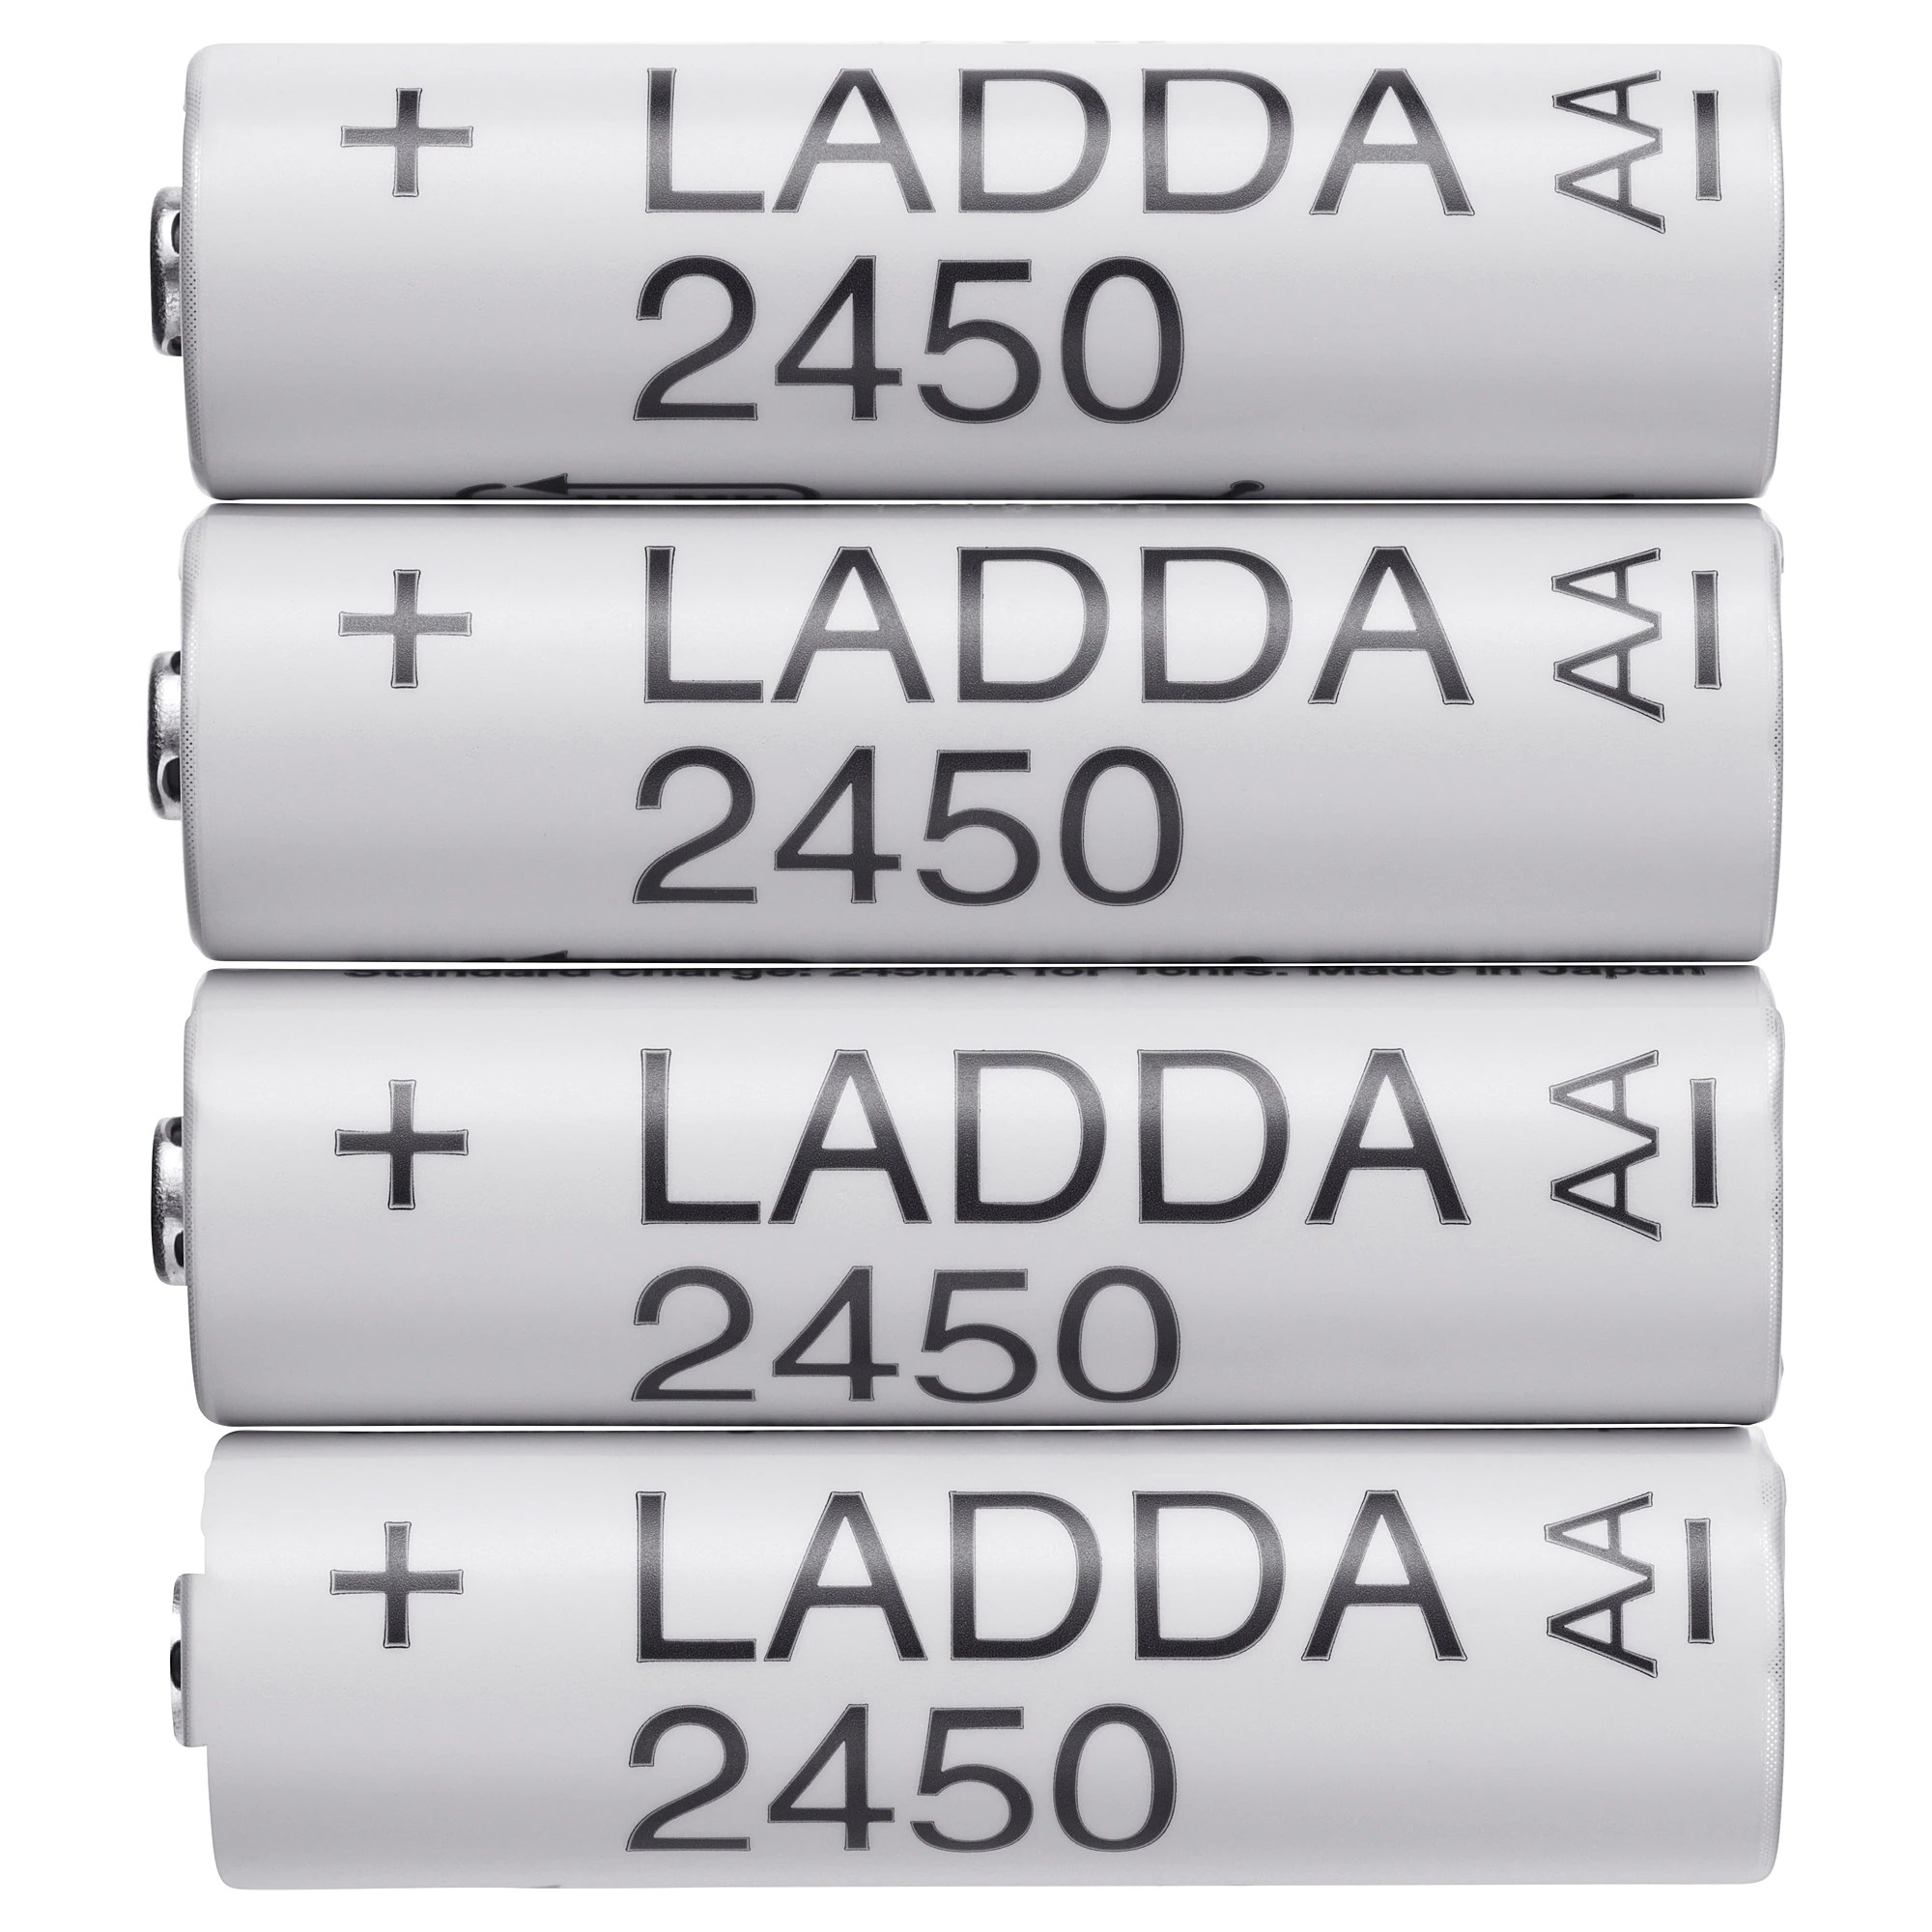 Ikea Küche Kinder Family Card Ladda Rechargeable Battery